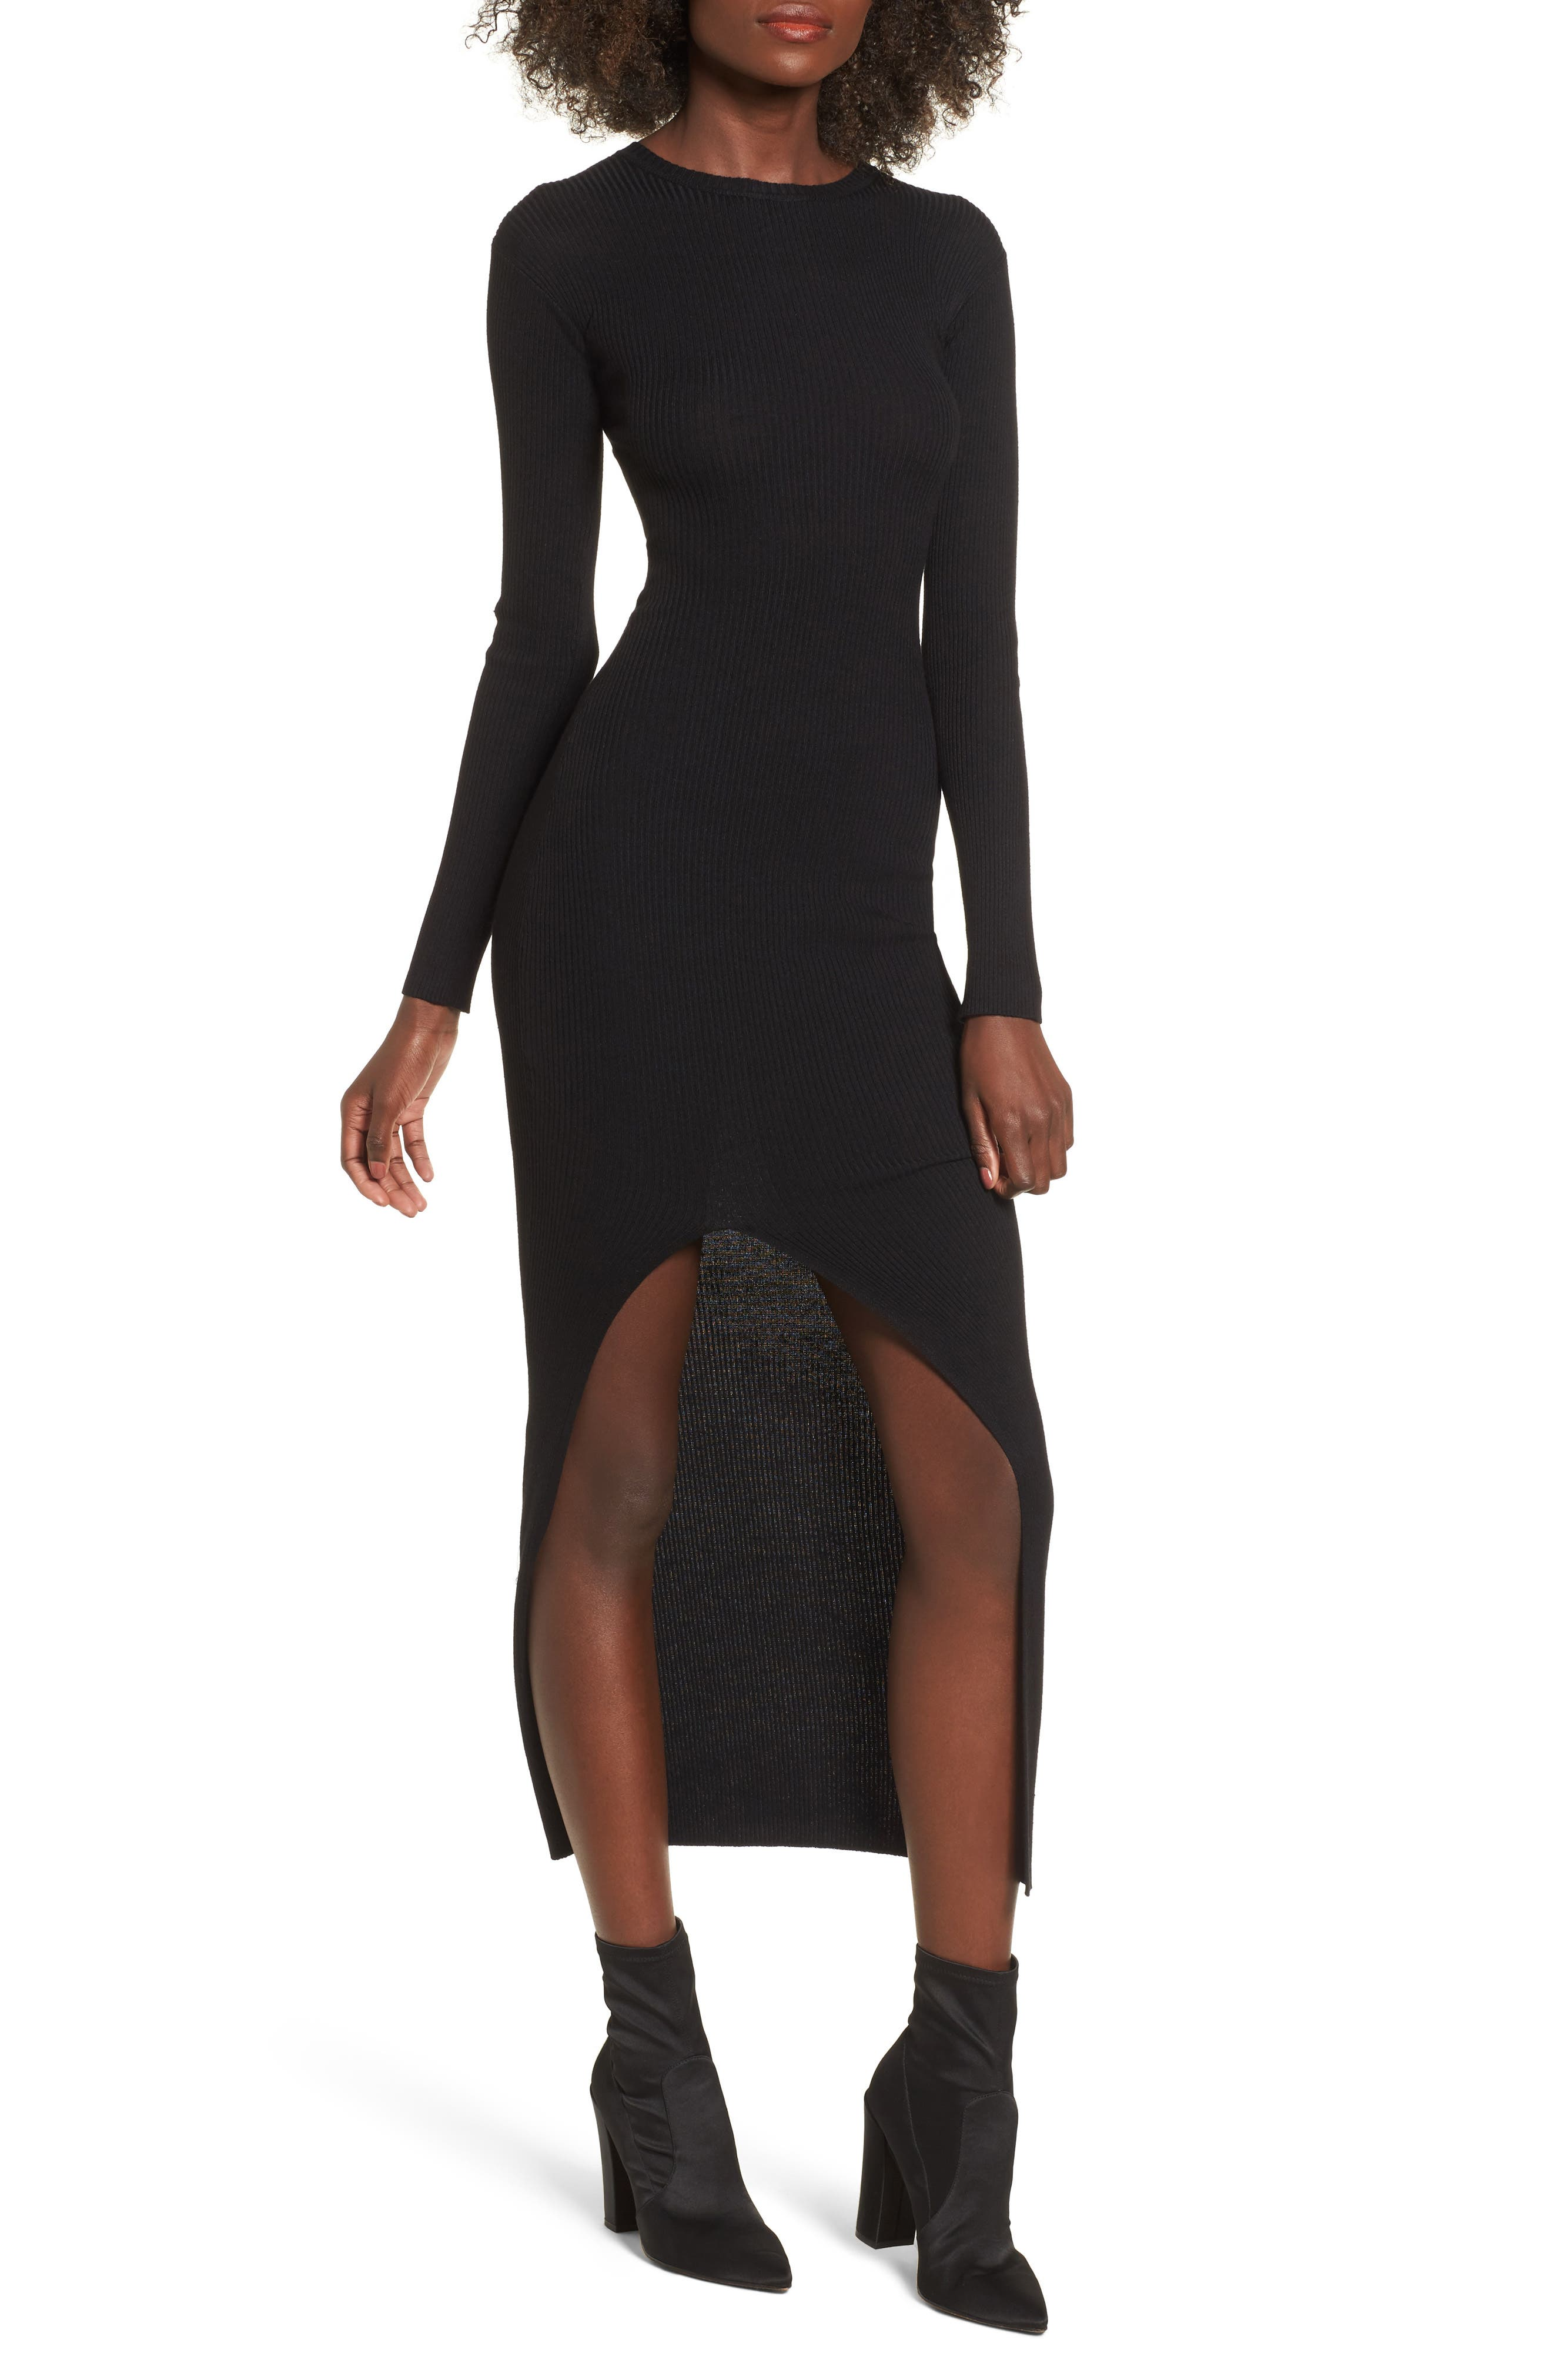 Lira Clothing Monaco Rib Knit Cutaway Dress